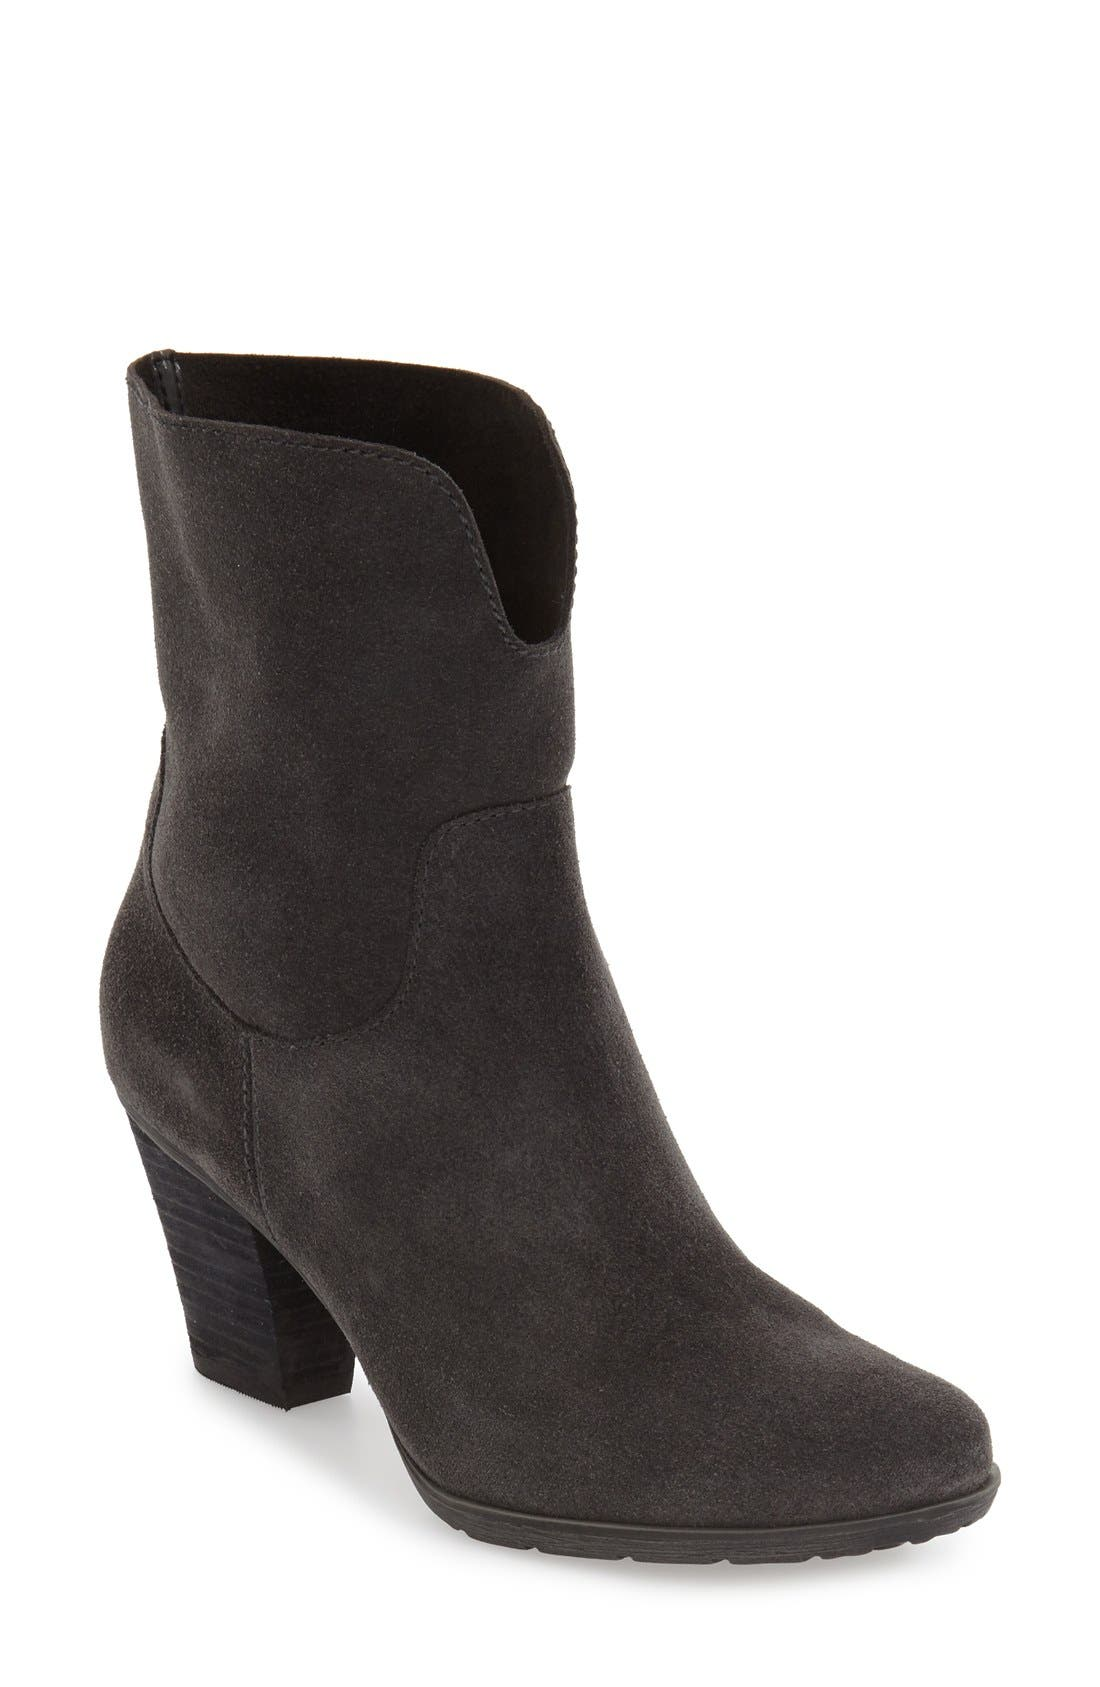 Fay Waterproof Ankle Boot,                             Main thumbnail 1, color,                             020